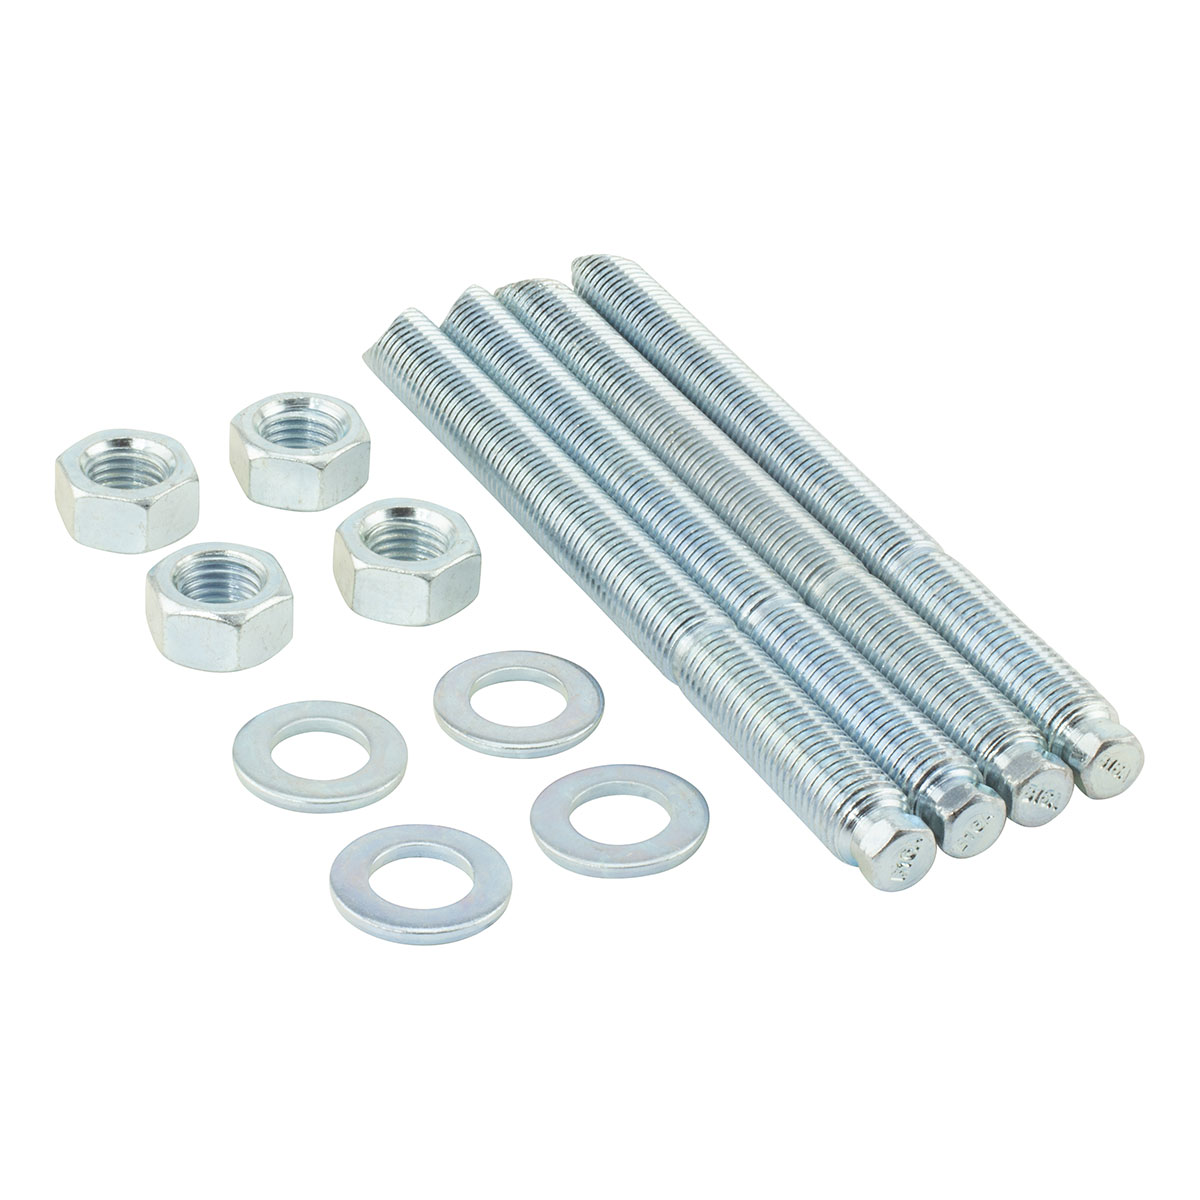 Pulsar Pier Fitting Kit